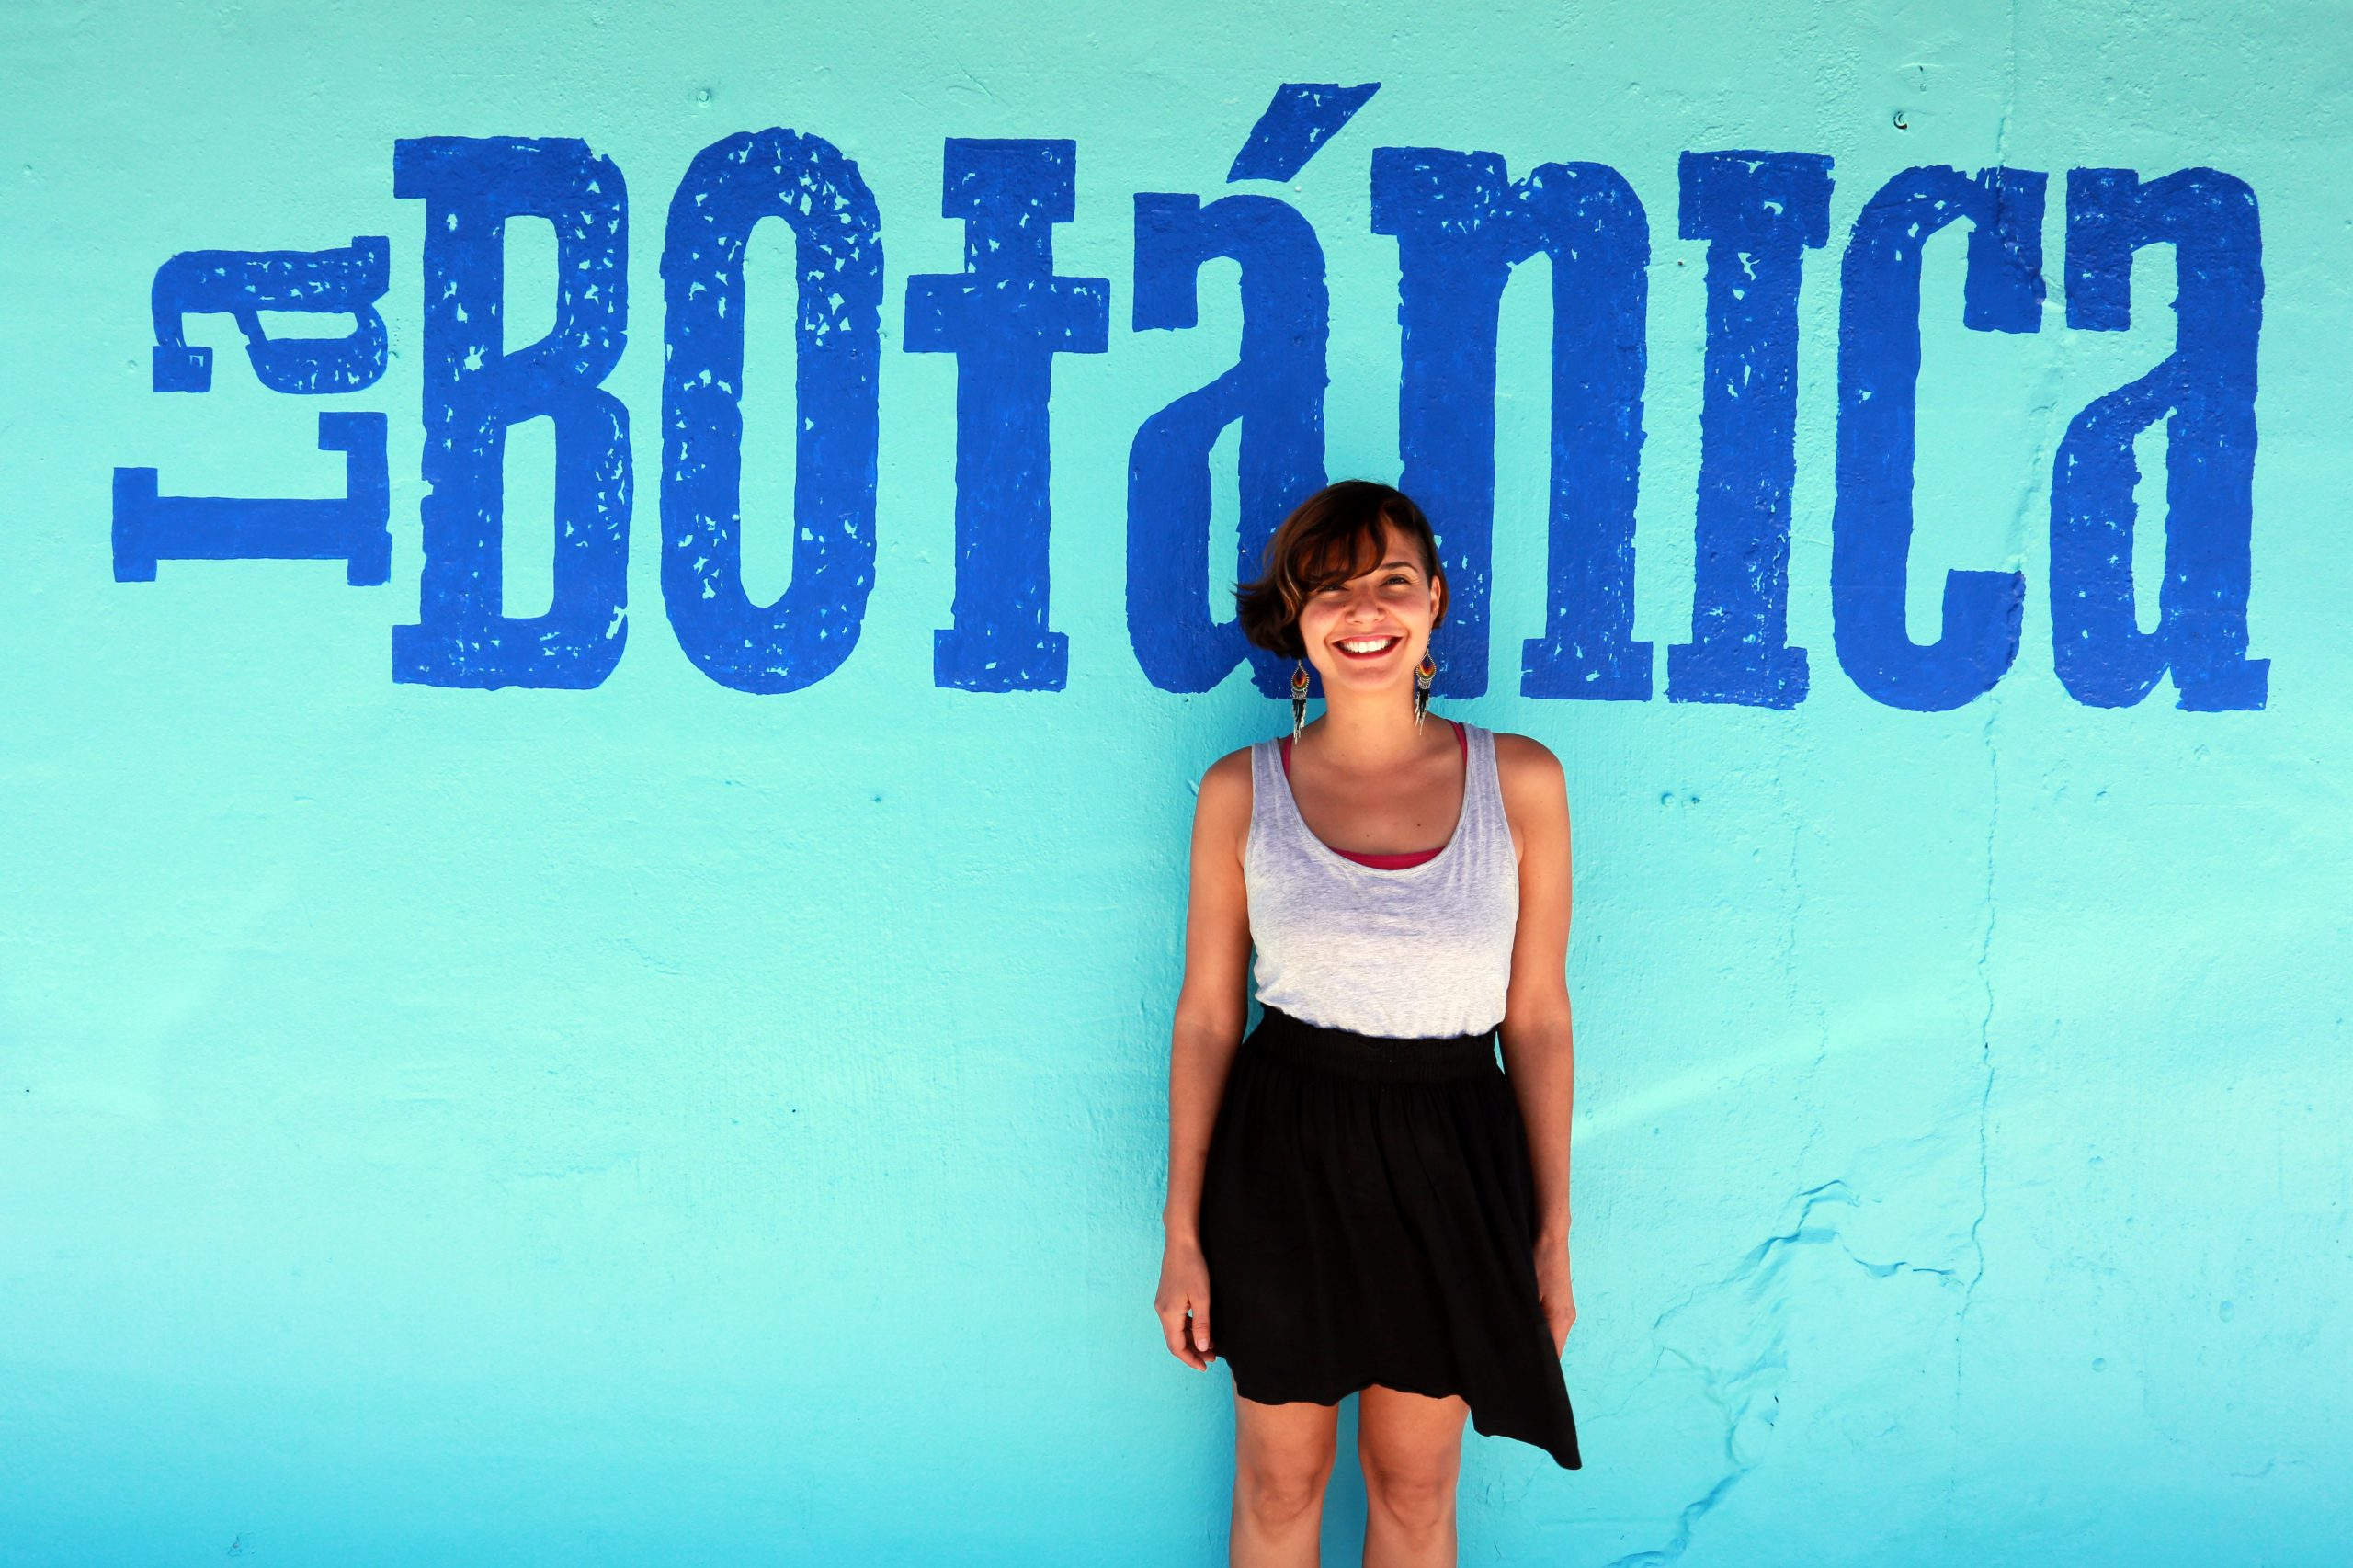 La Botanica Closes Its Doors at N. St. Mary's Location